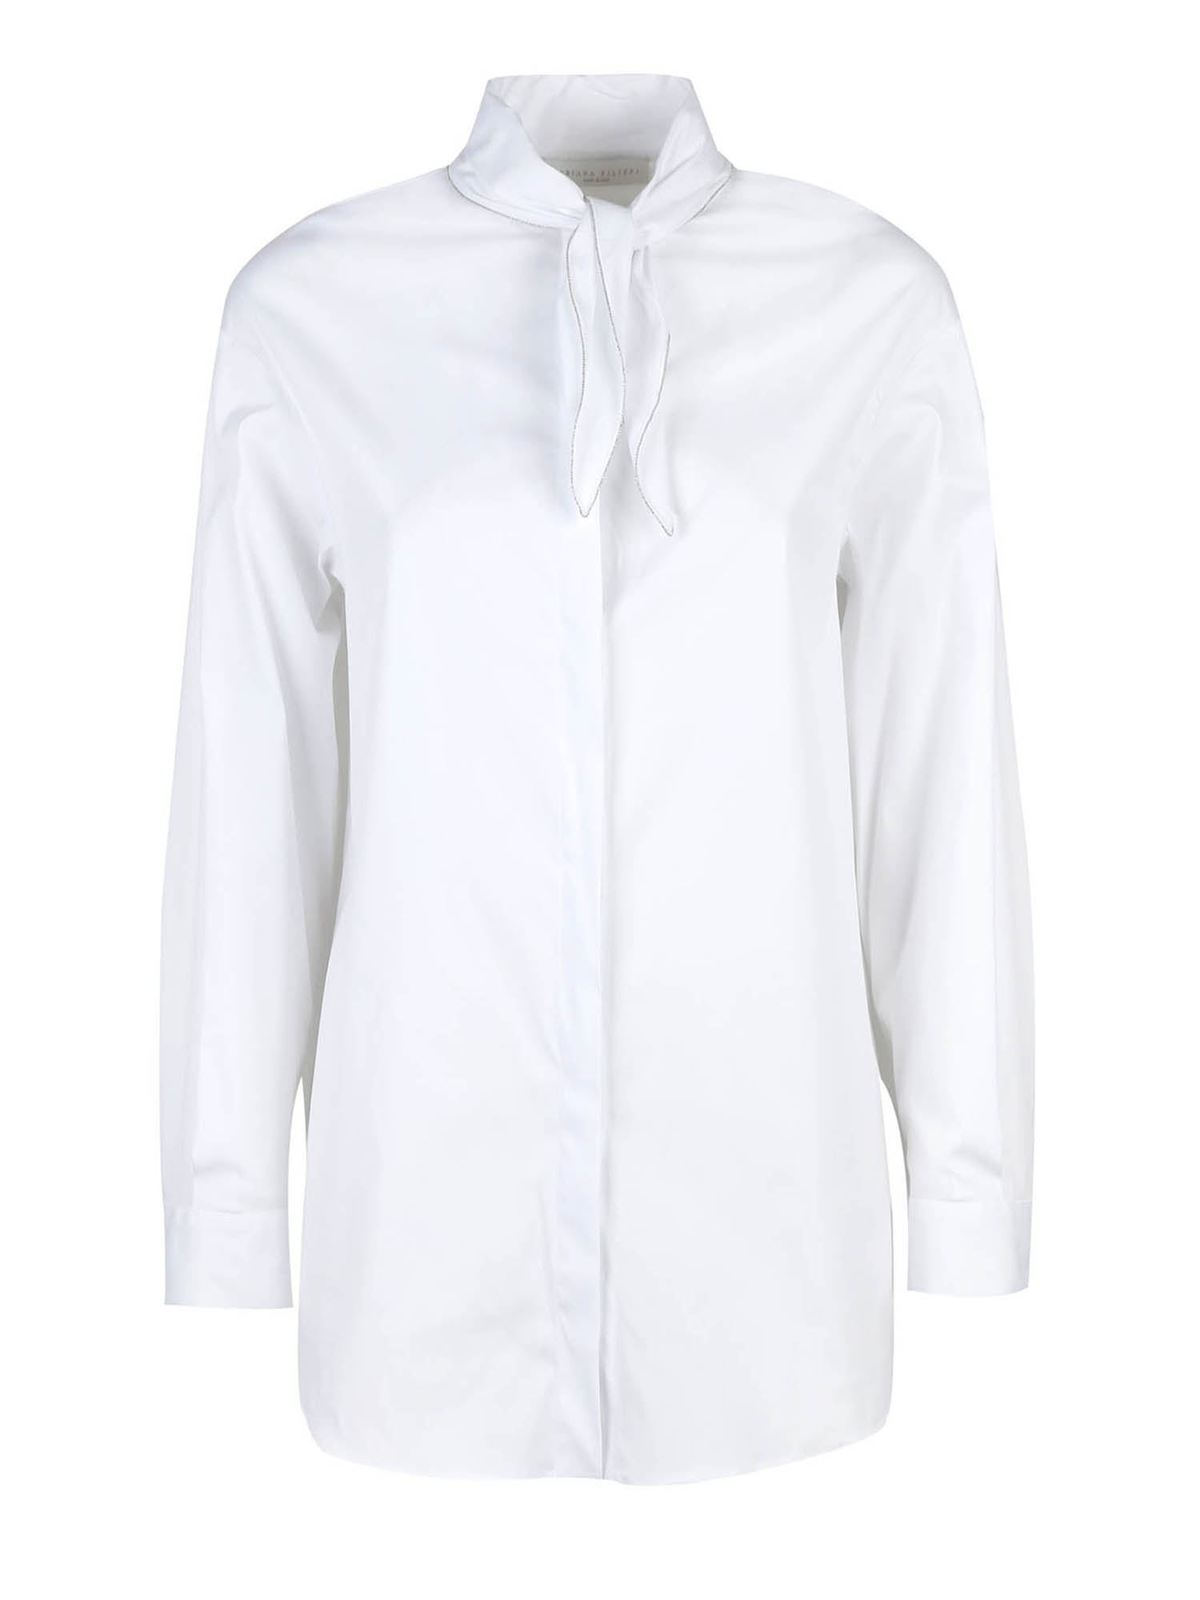 Fabiana Filippi MICRO BEADS SHIRT IN WHITE